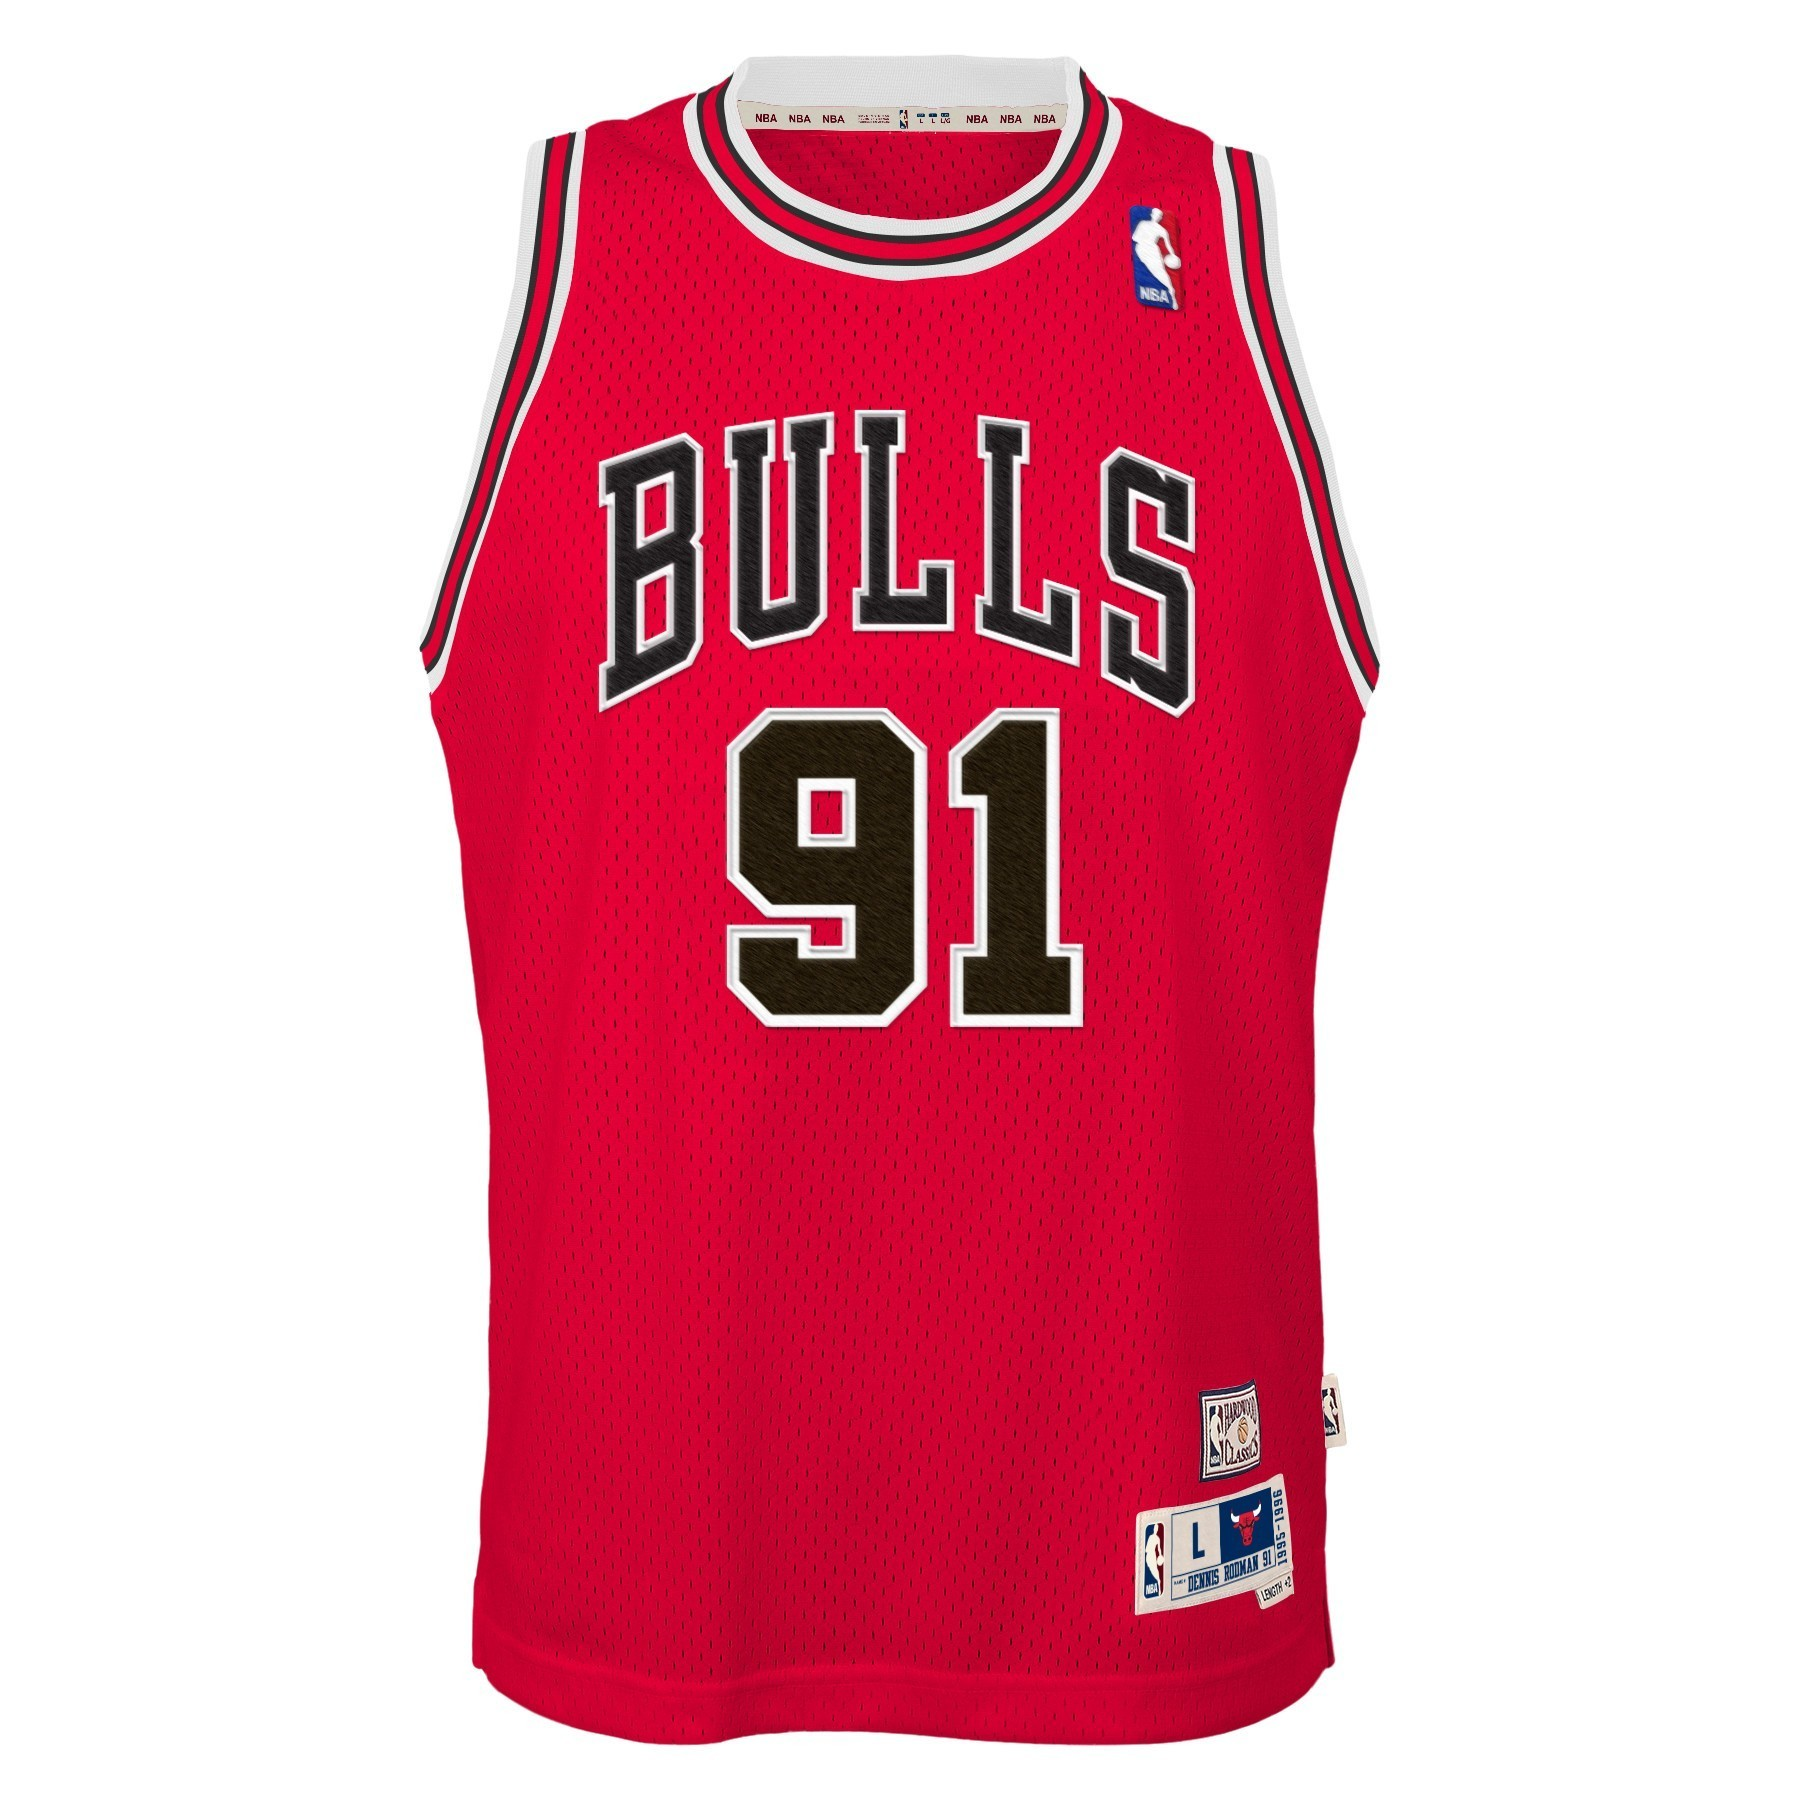 f9205164947 Details about Dennis Rodman Chicago Bulls NBA Youth Throwback Swingman  Jersey - Red